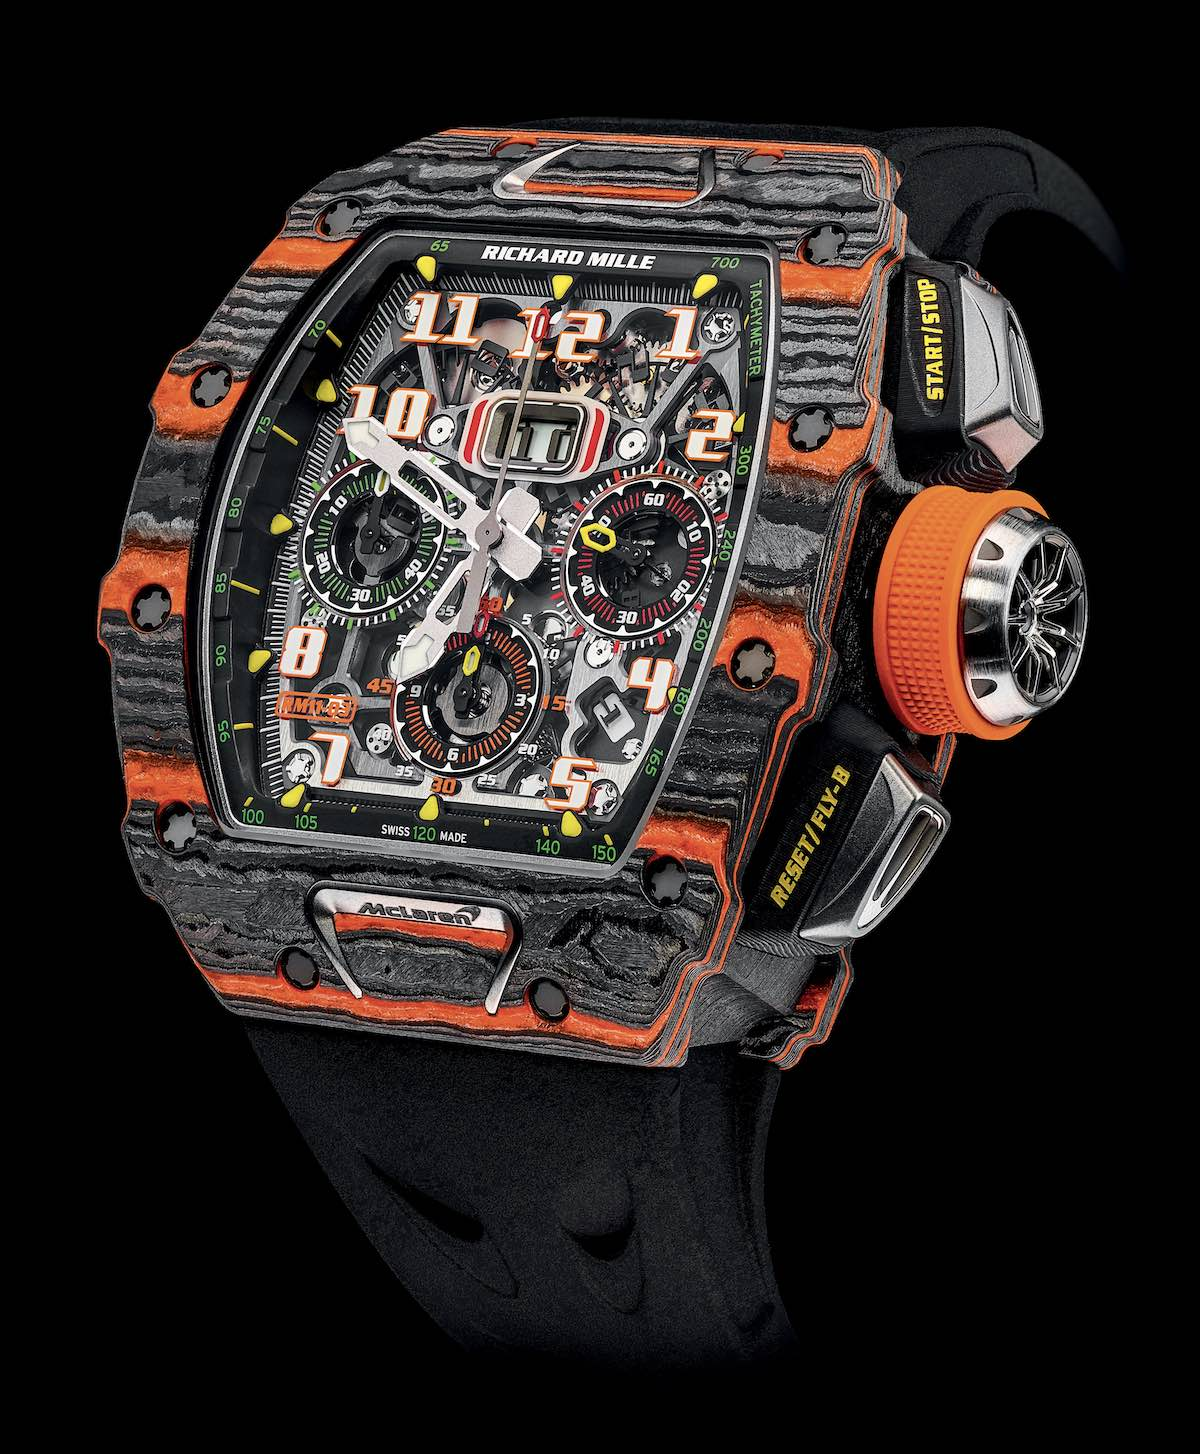 Richard Mille RM 11-03 Automatic Flyback Chronograph McLaren Only-Watch-2019